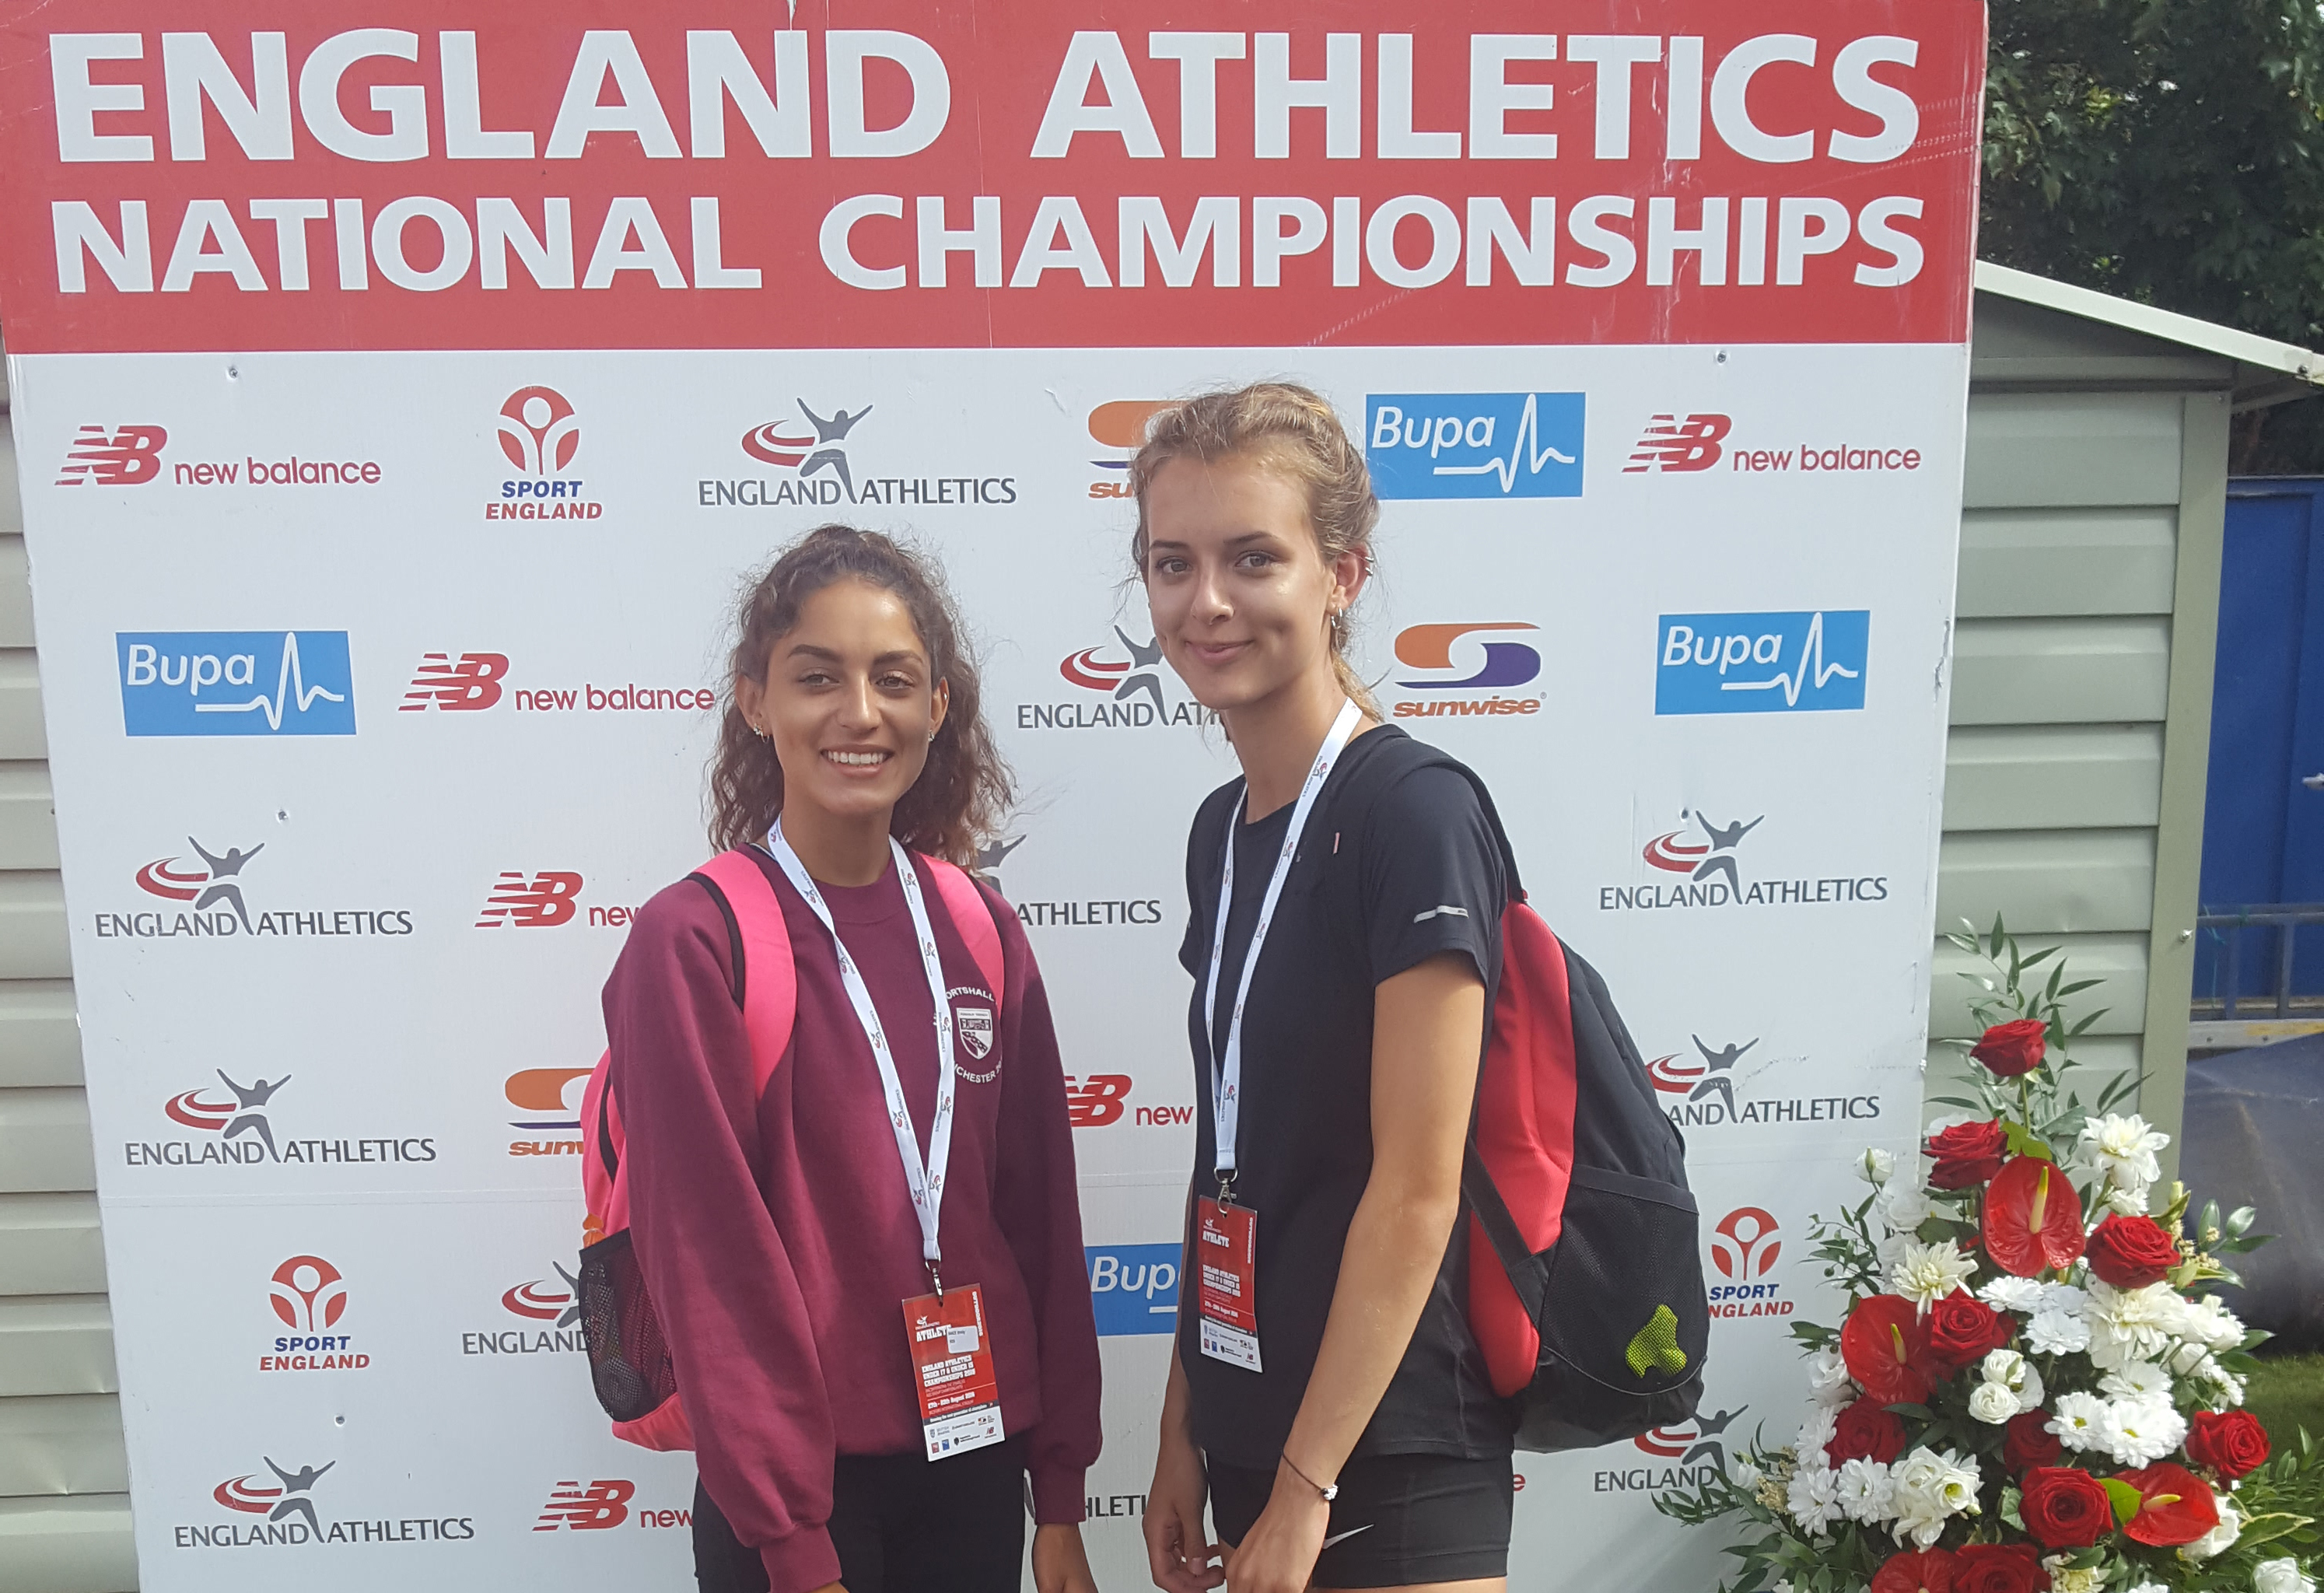 CoNAC Athletes Competed in the England Athletics Under 17 and Under 15 Championships